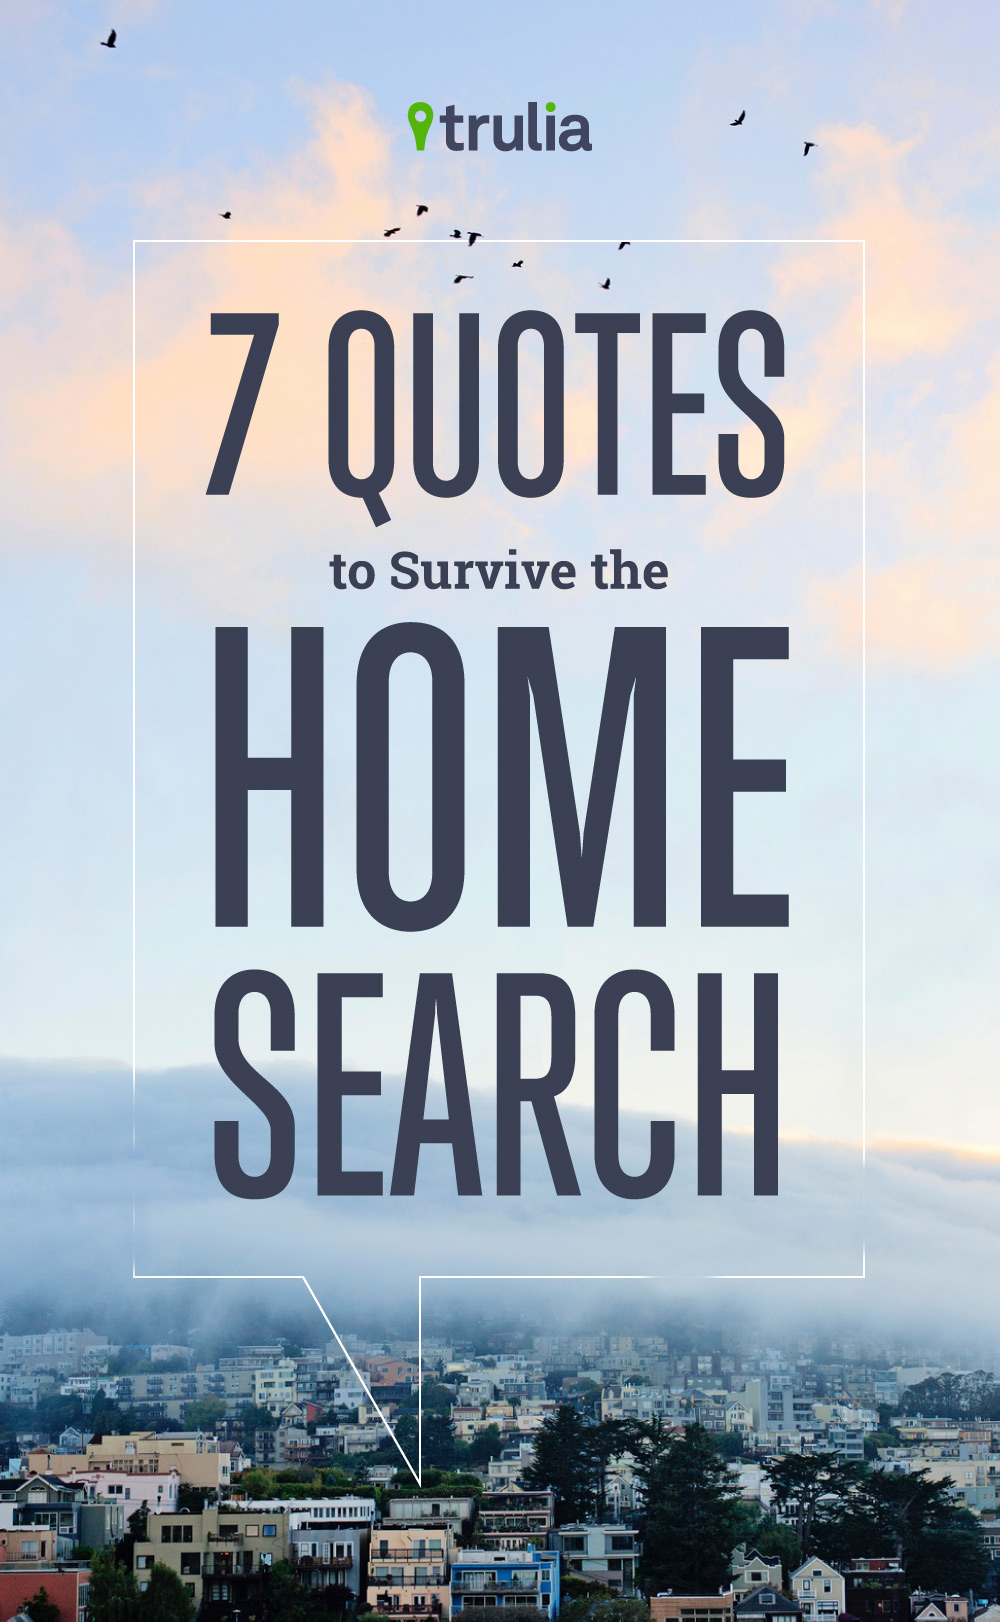 Search Quotes 7 Quotes To Survive The Home Search  Trulia's Blog  Real Estate 101